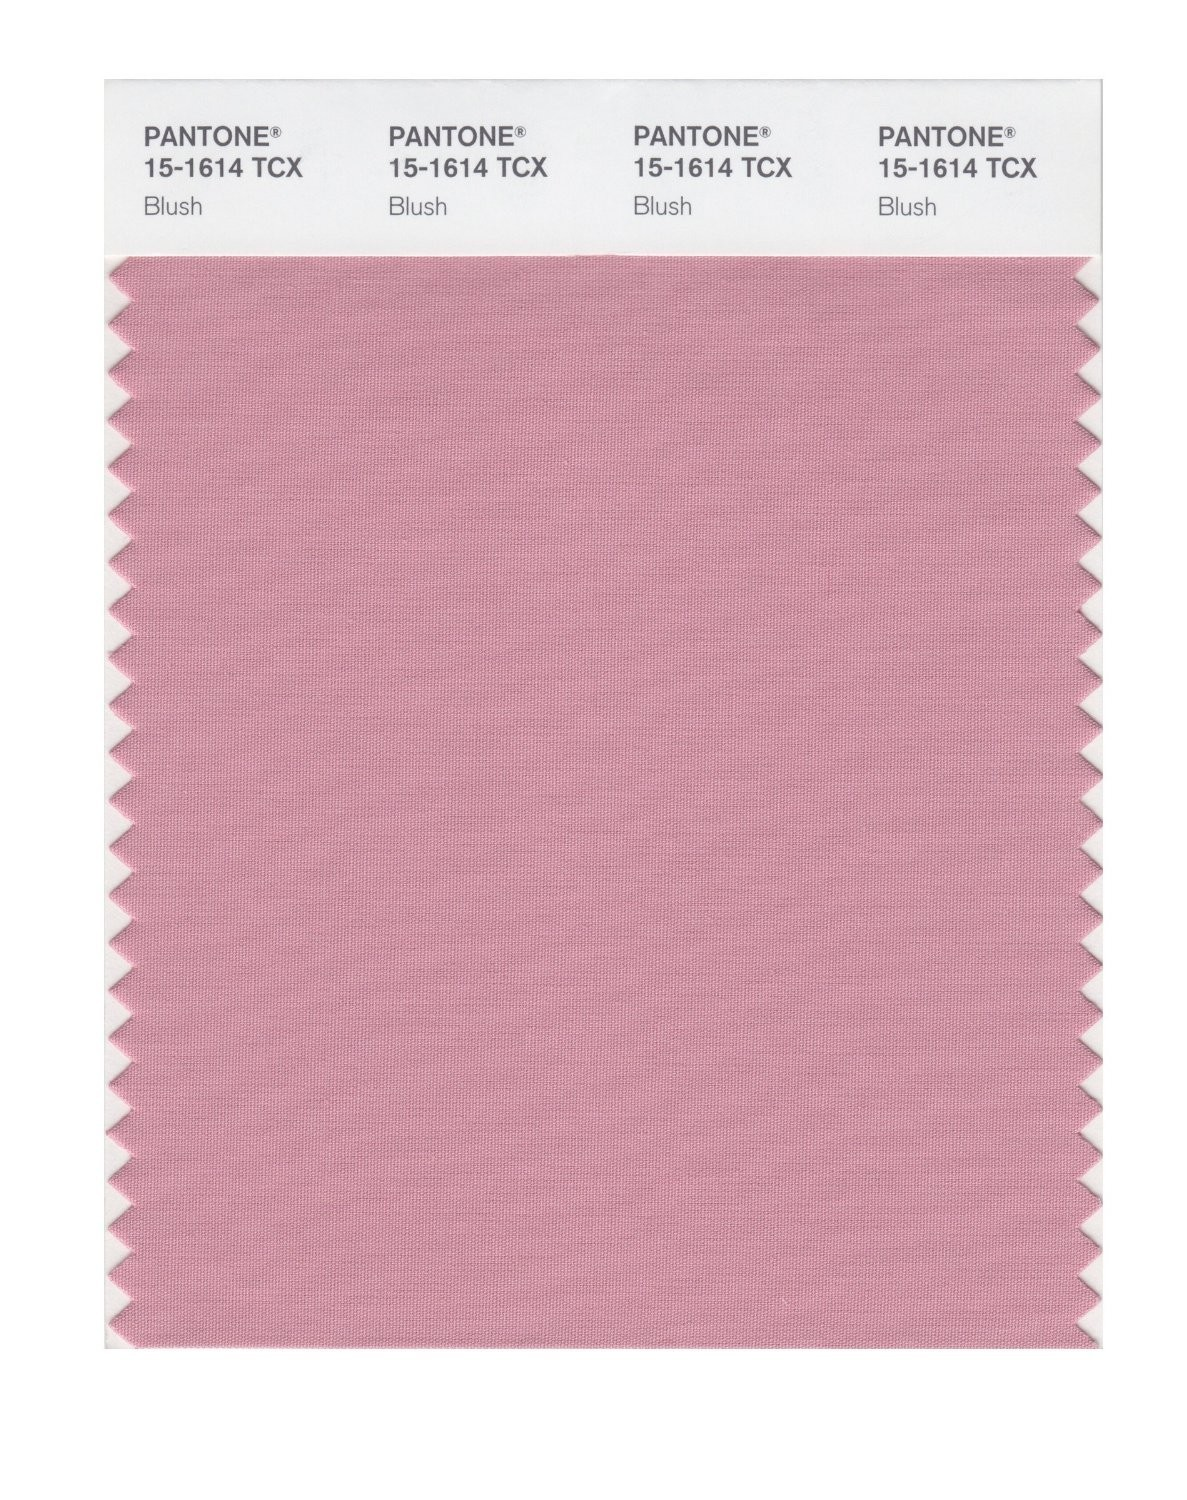 Pantone 15-1614 TCX Swatch Card Blush